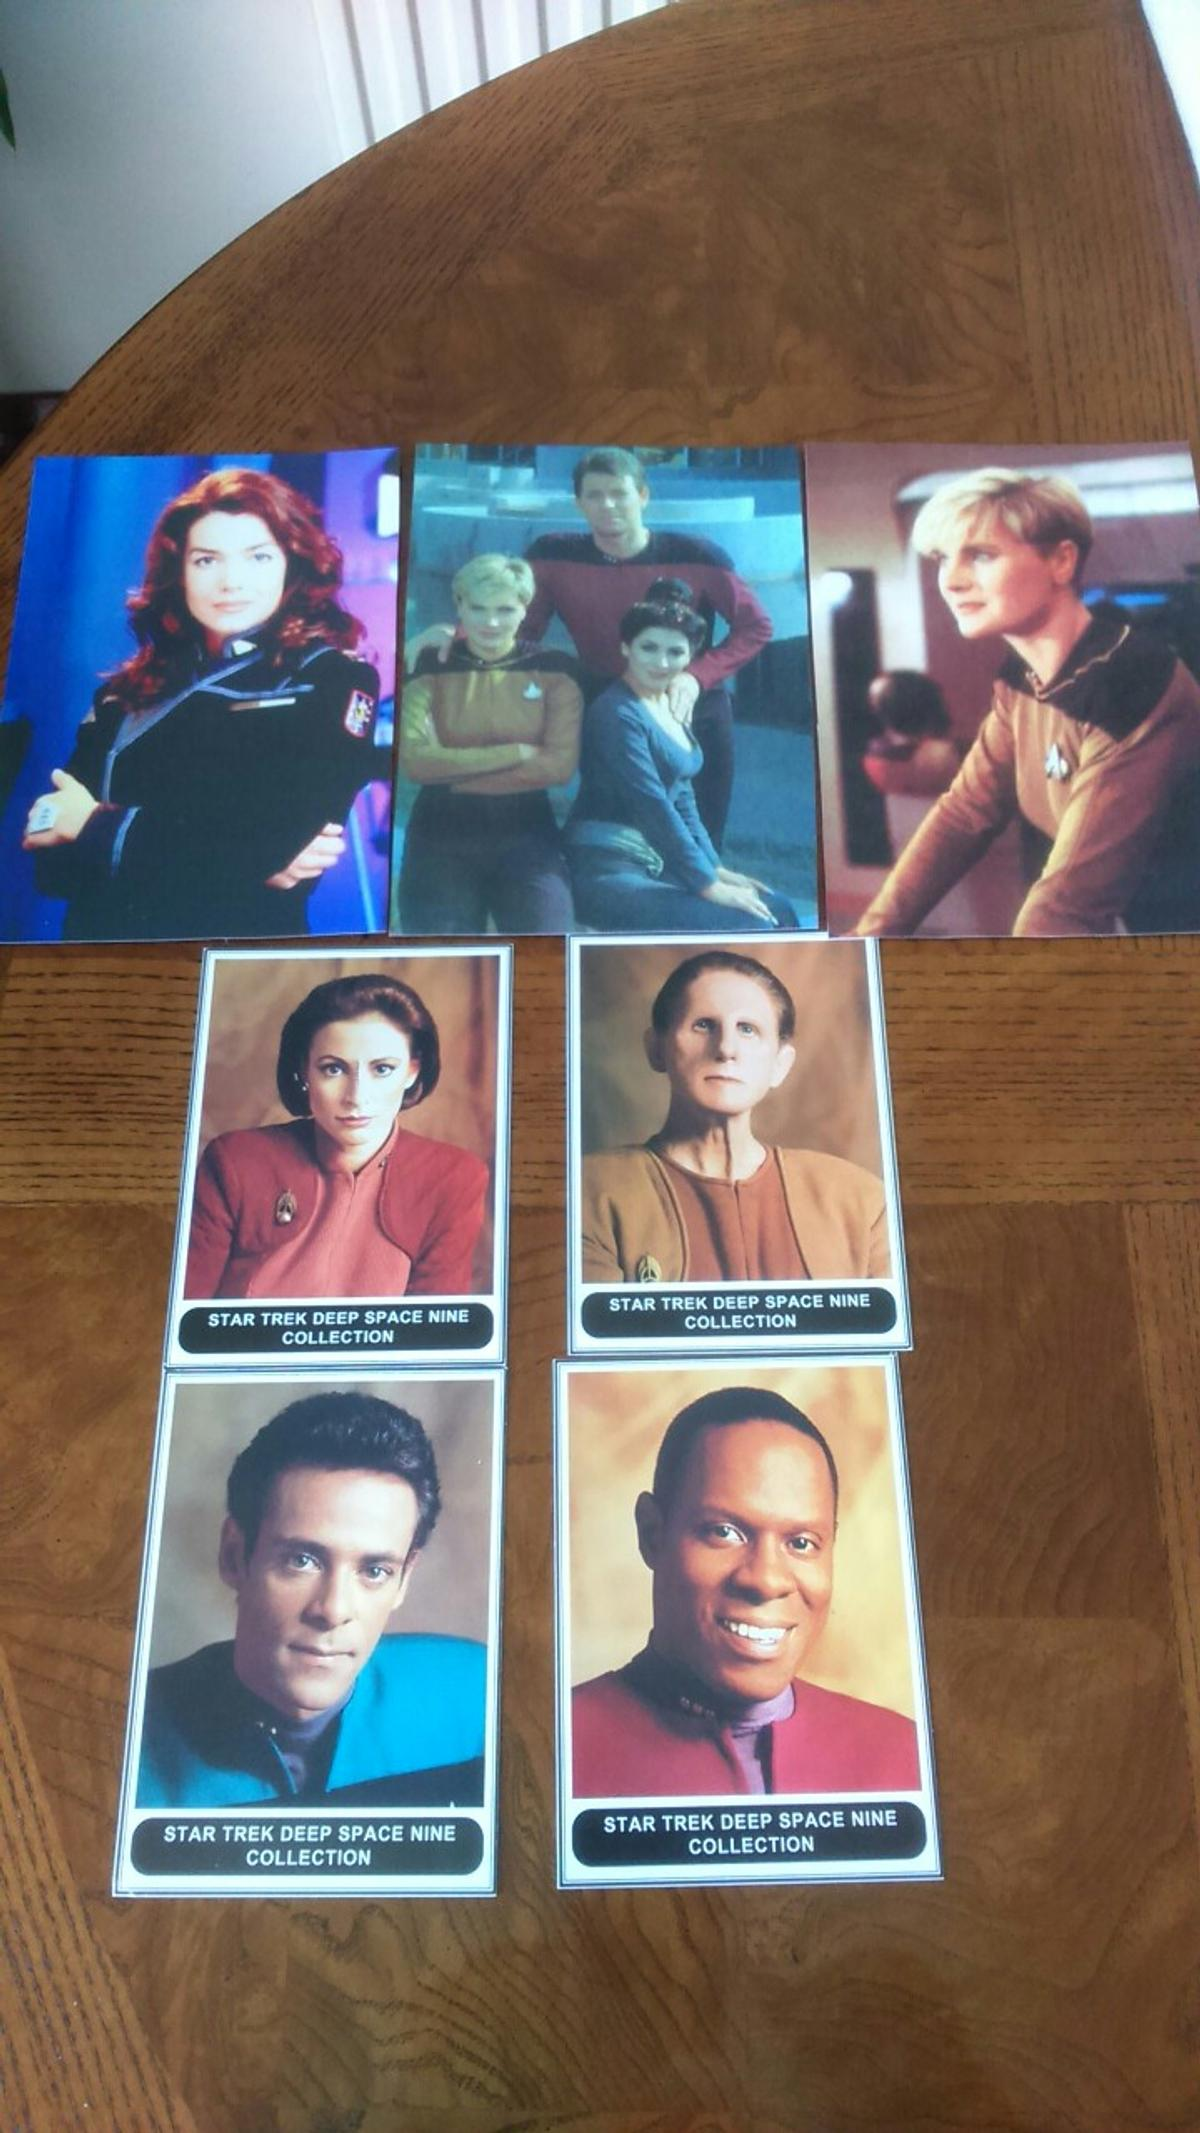 Star Trek Portrait and Voyager cards. Plus 2 x 3D Cards: First Contact/Independent Day. Total of 17 Cards. In very good condition. Good collection for a Star trek fans